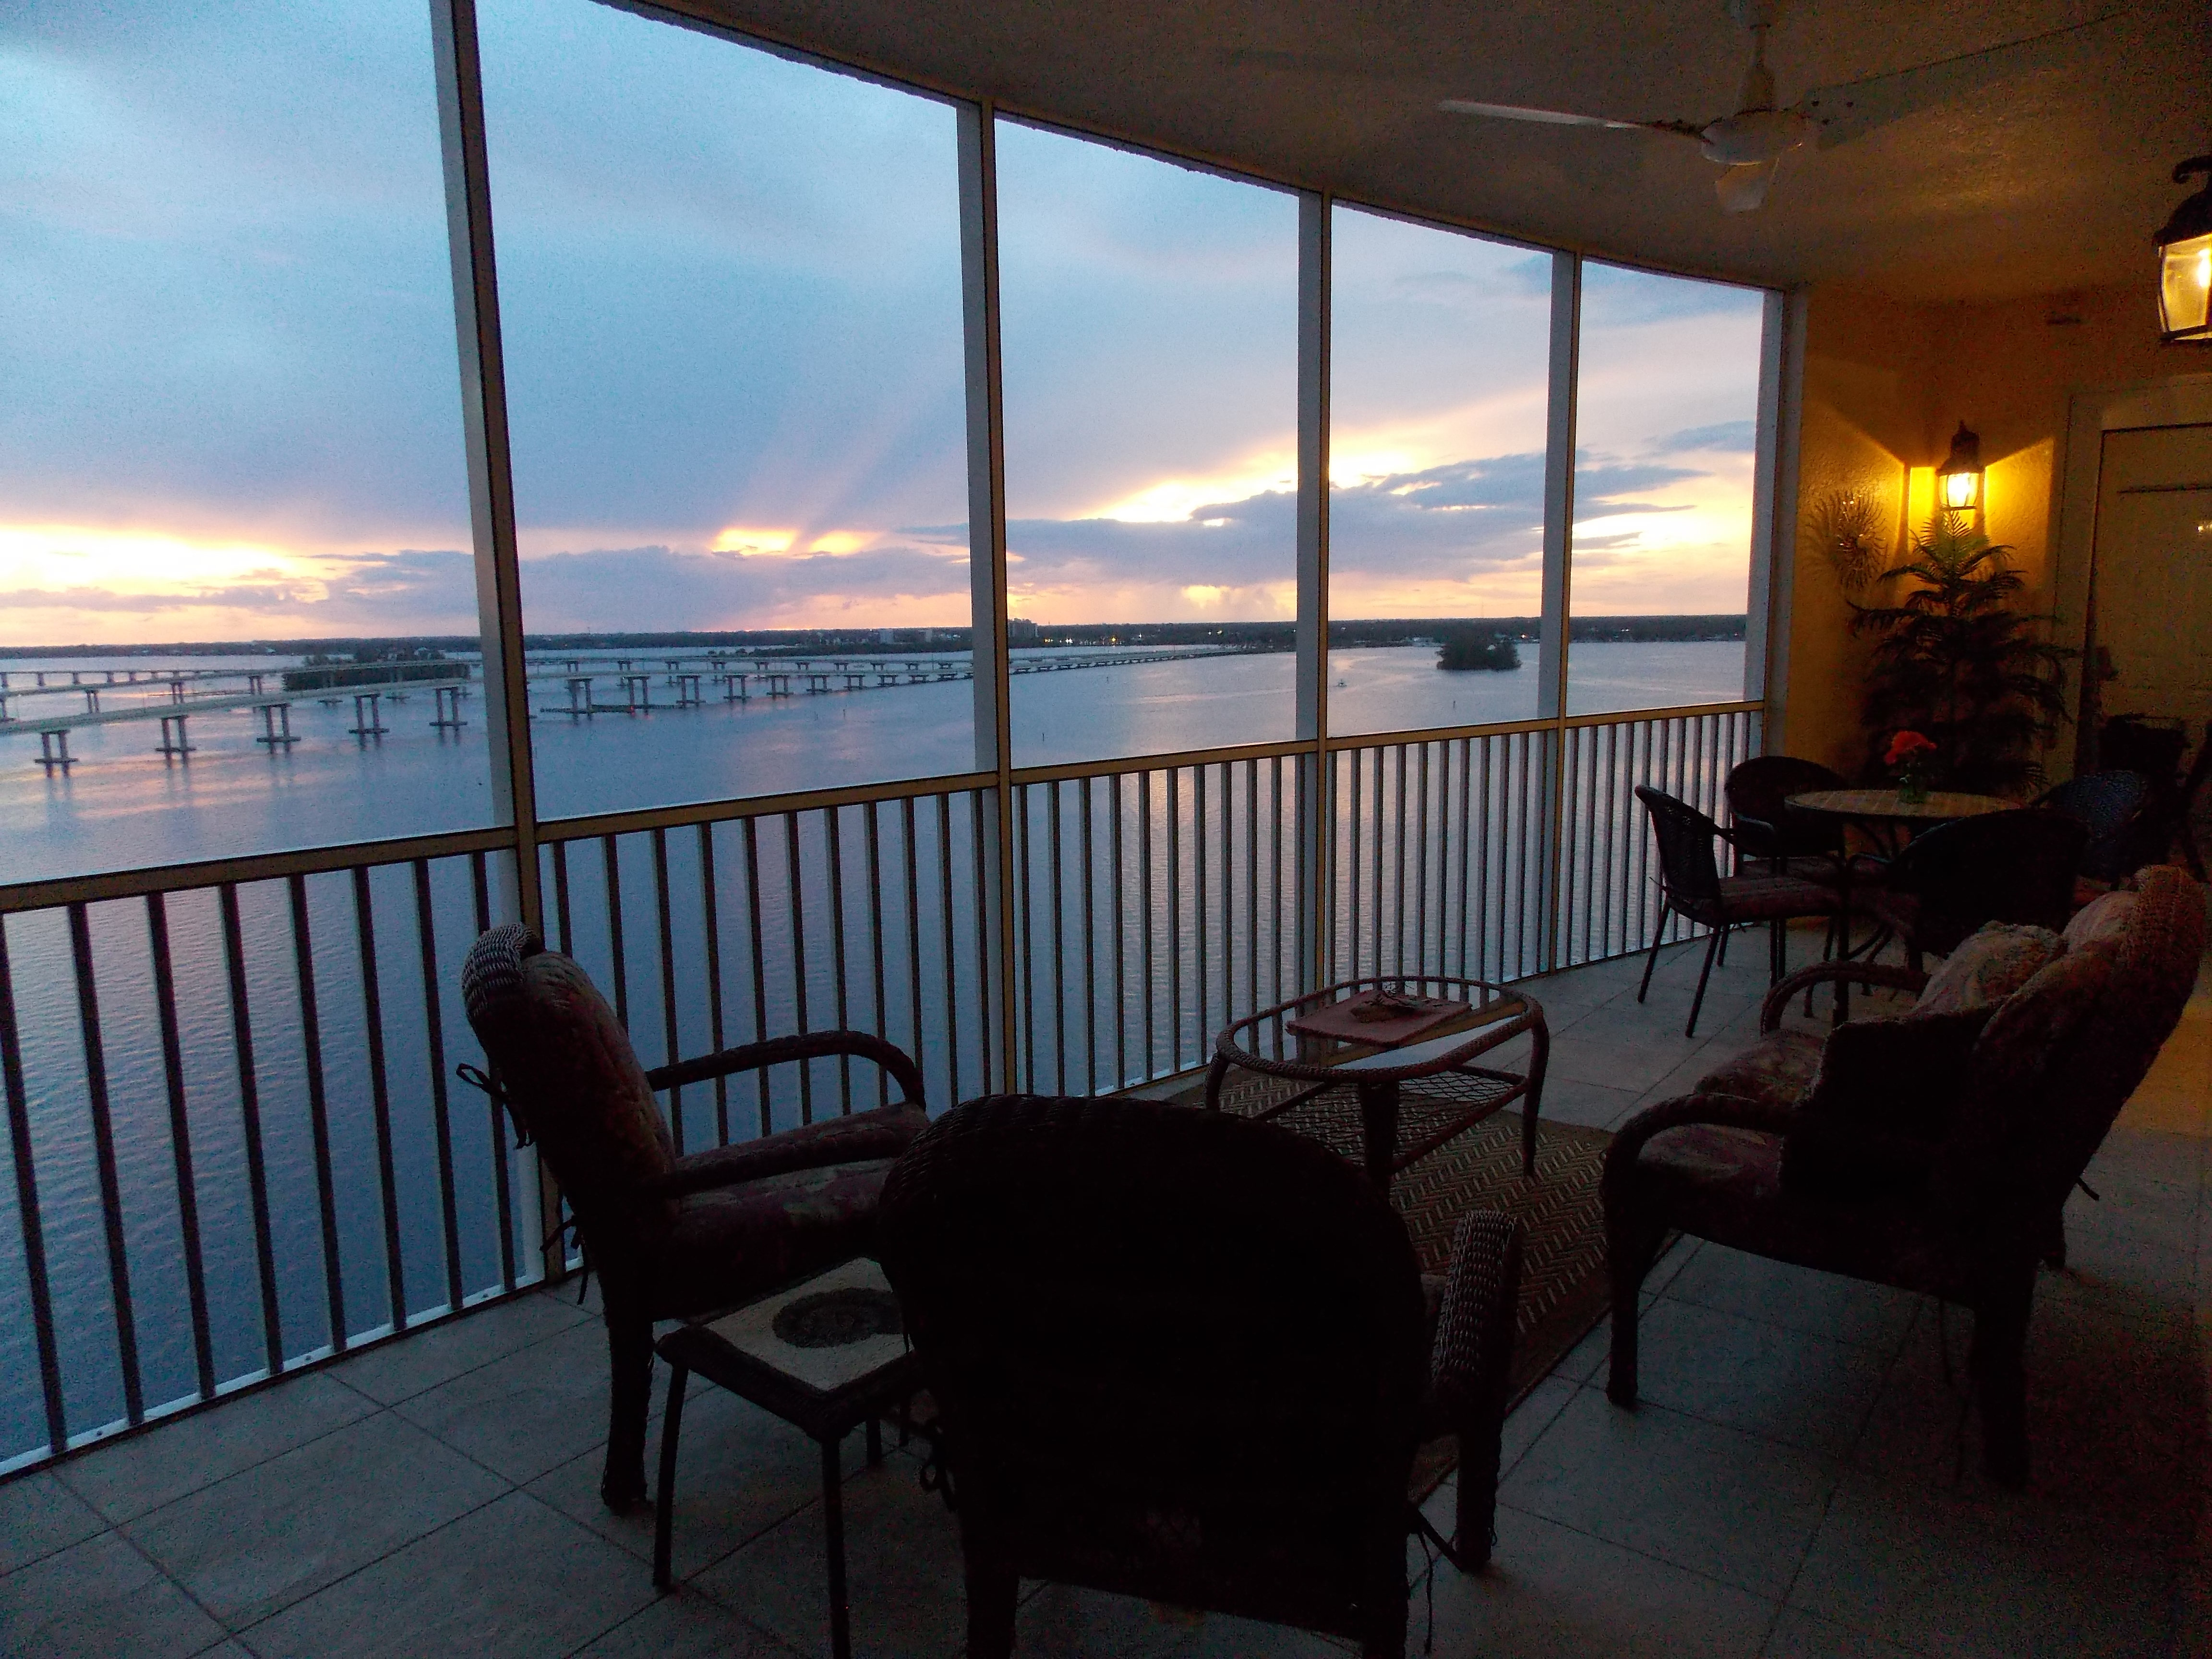 River District Condos Fort Myers Florida, Downtown Fort Myers Condos for Sale, Fort Myers Waterfront Homes for Sale, Fort Myers Condos for Sale